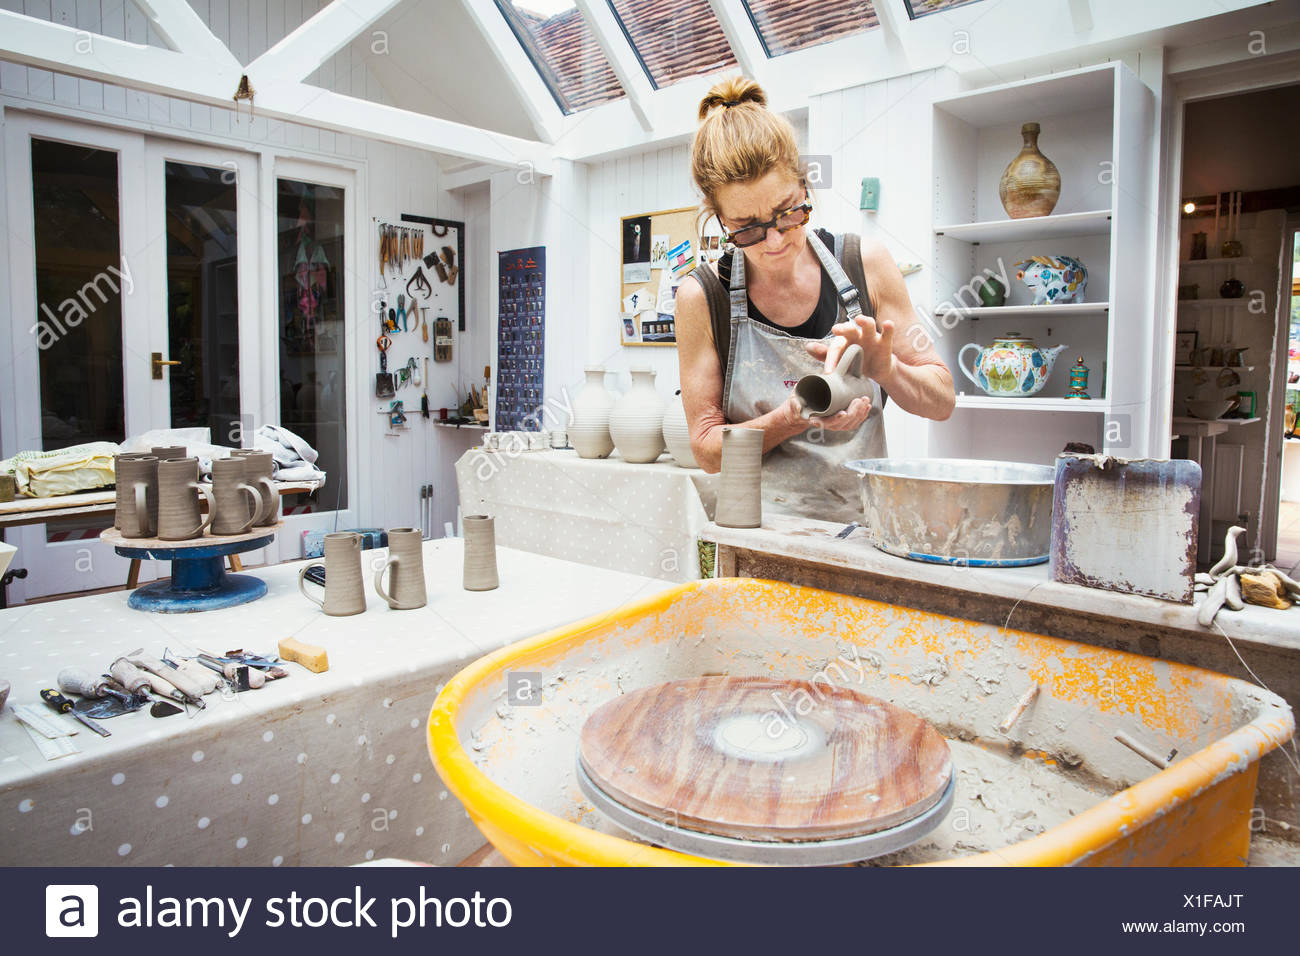 A potter handling a wet clay pot, preparing it for kiln firing. - Stock Image